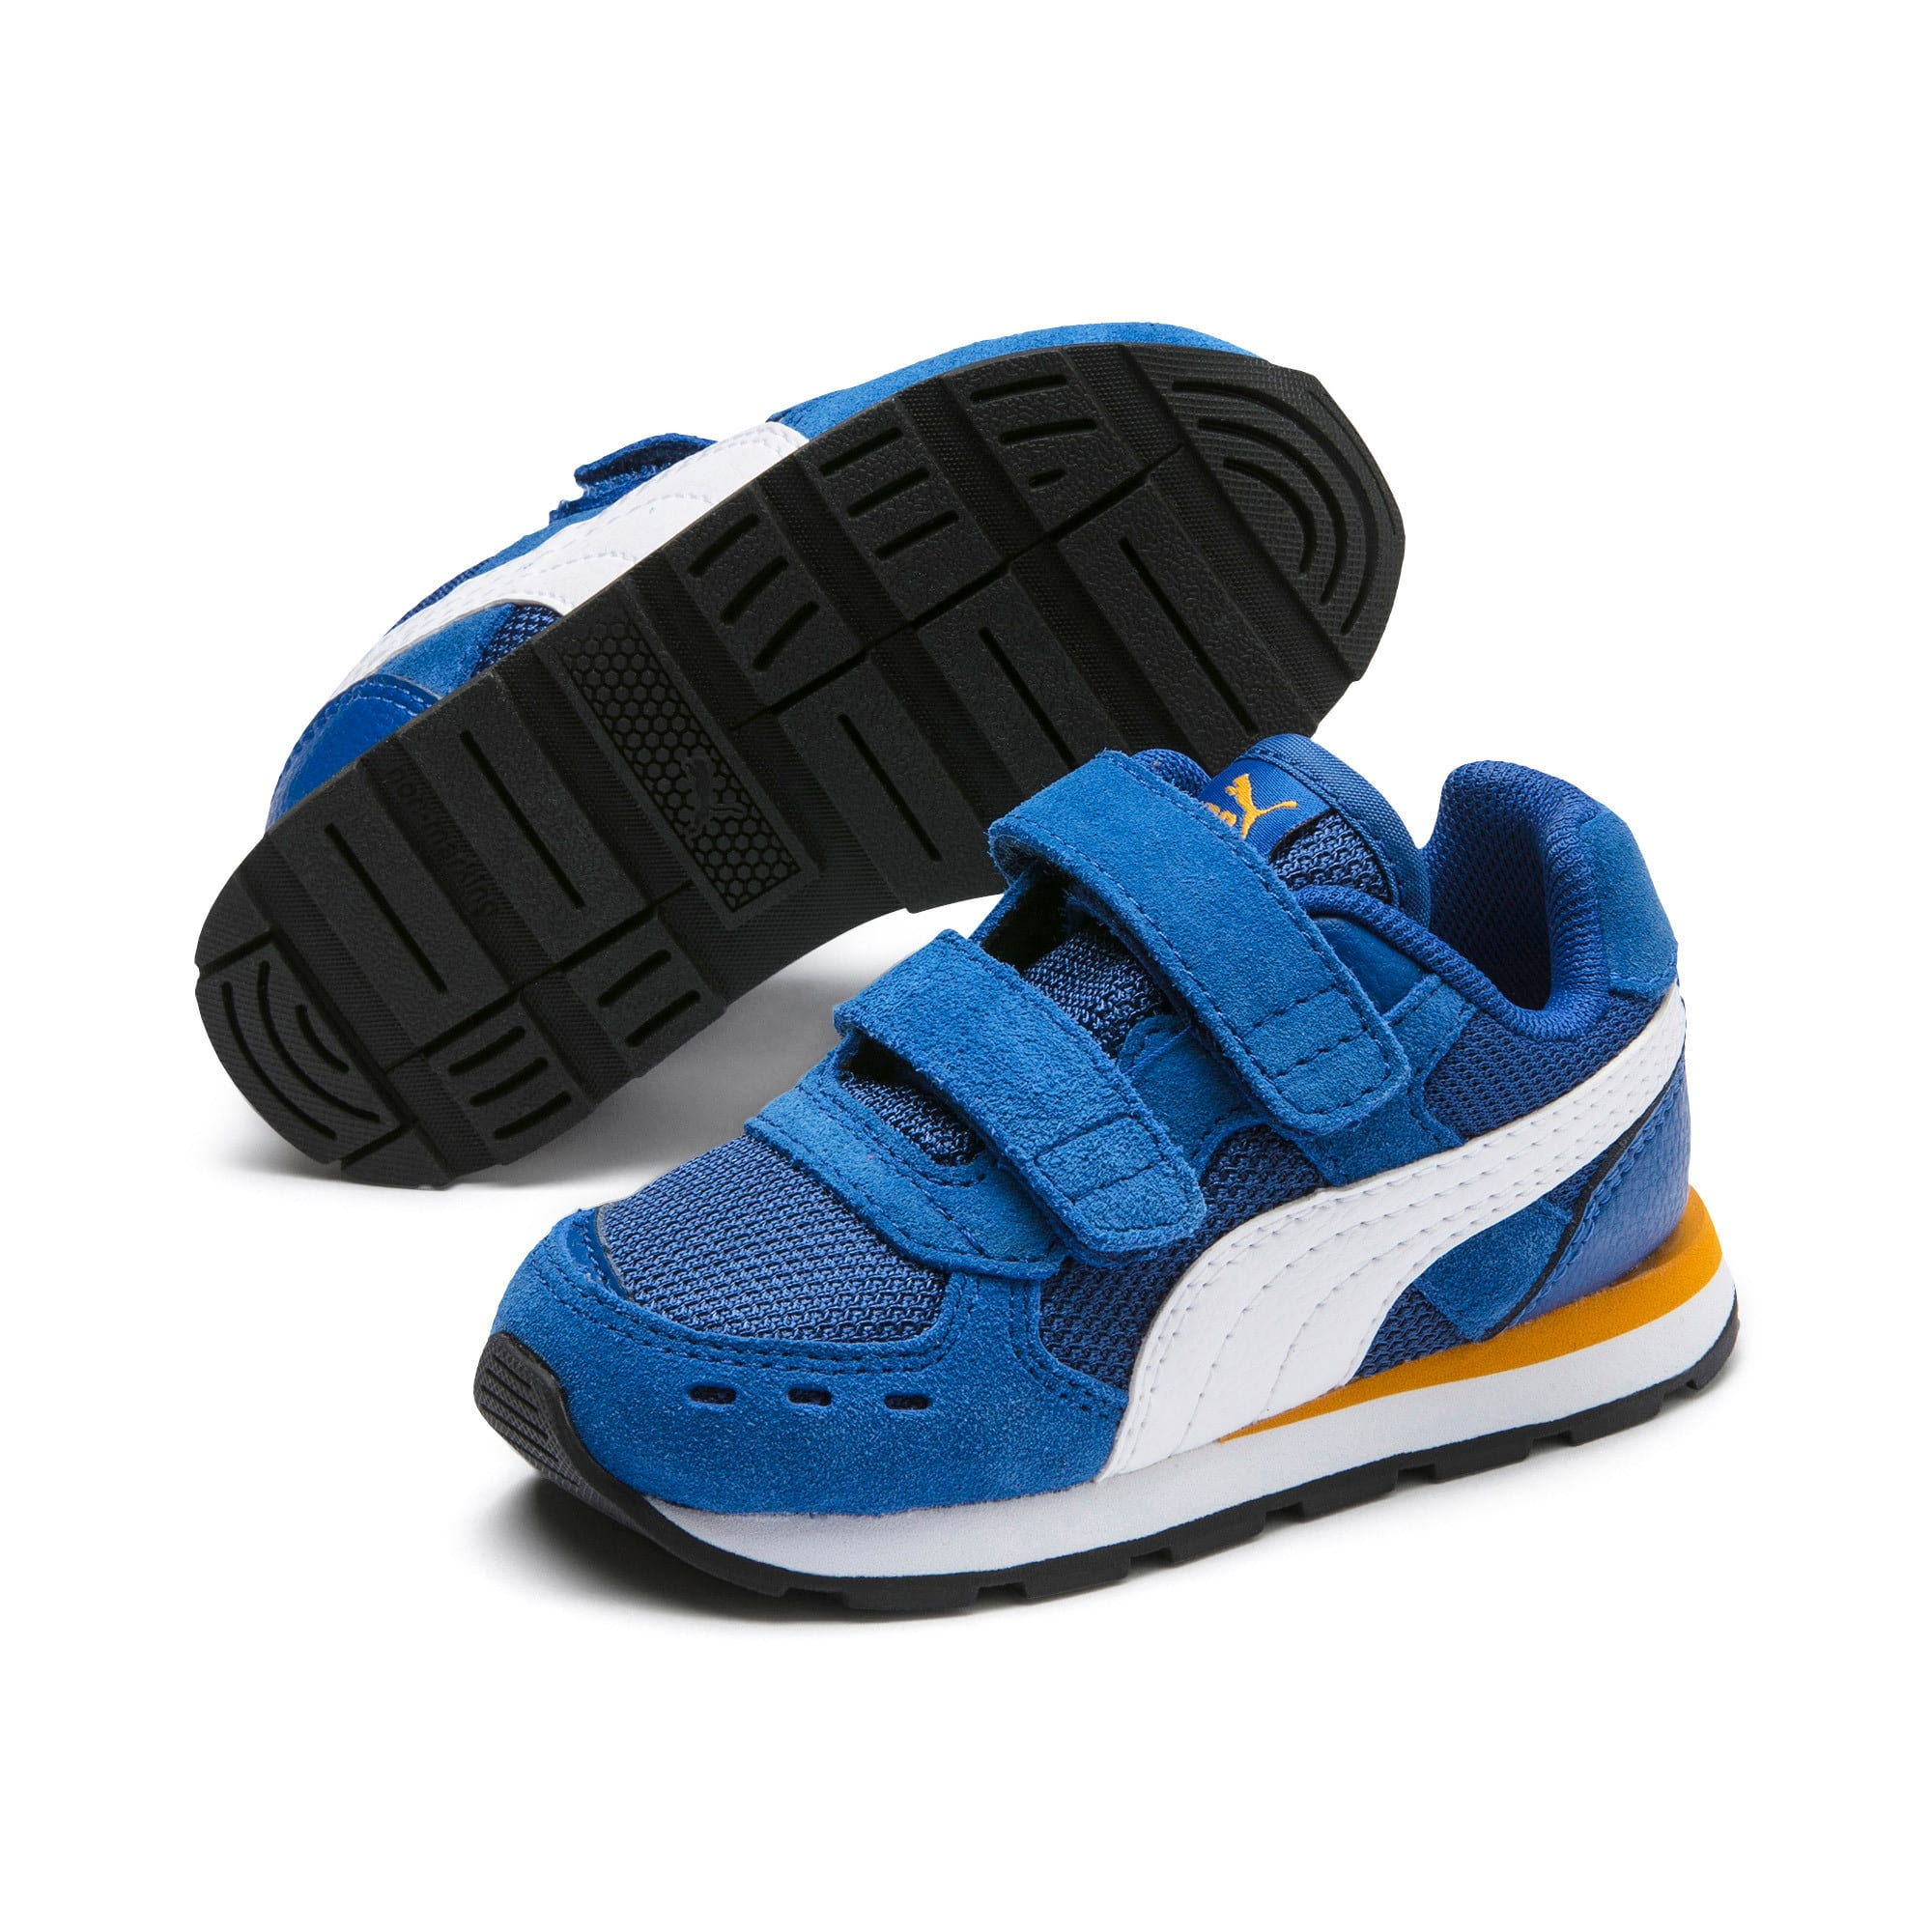 Vista Toddler Shoes, Galaxy Blue-Puma White, large